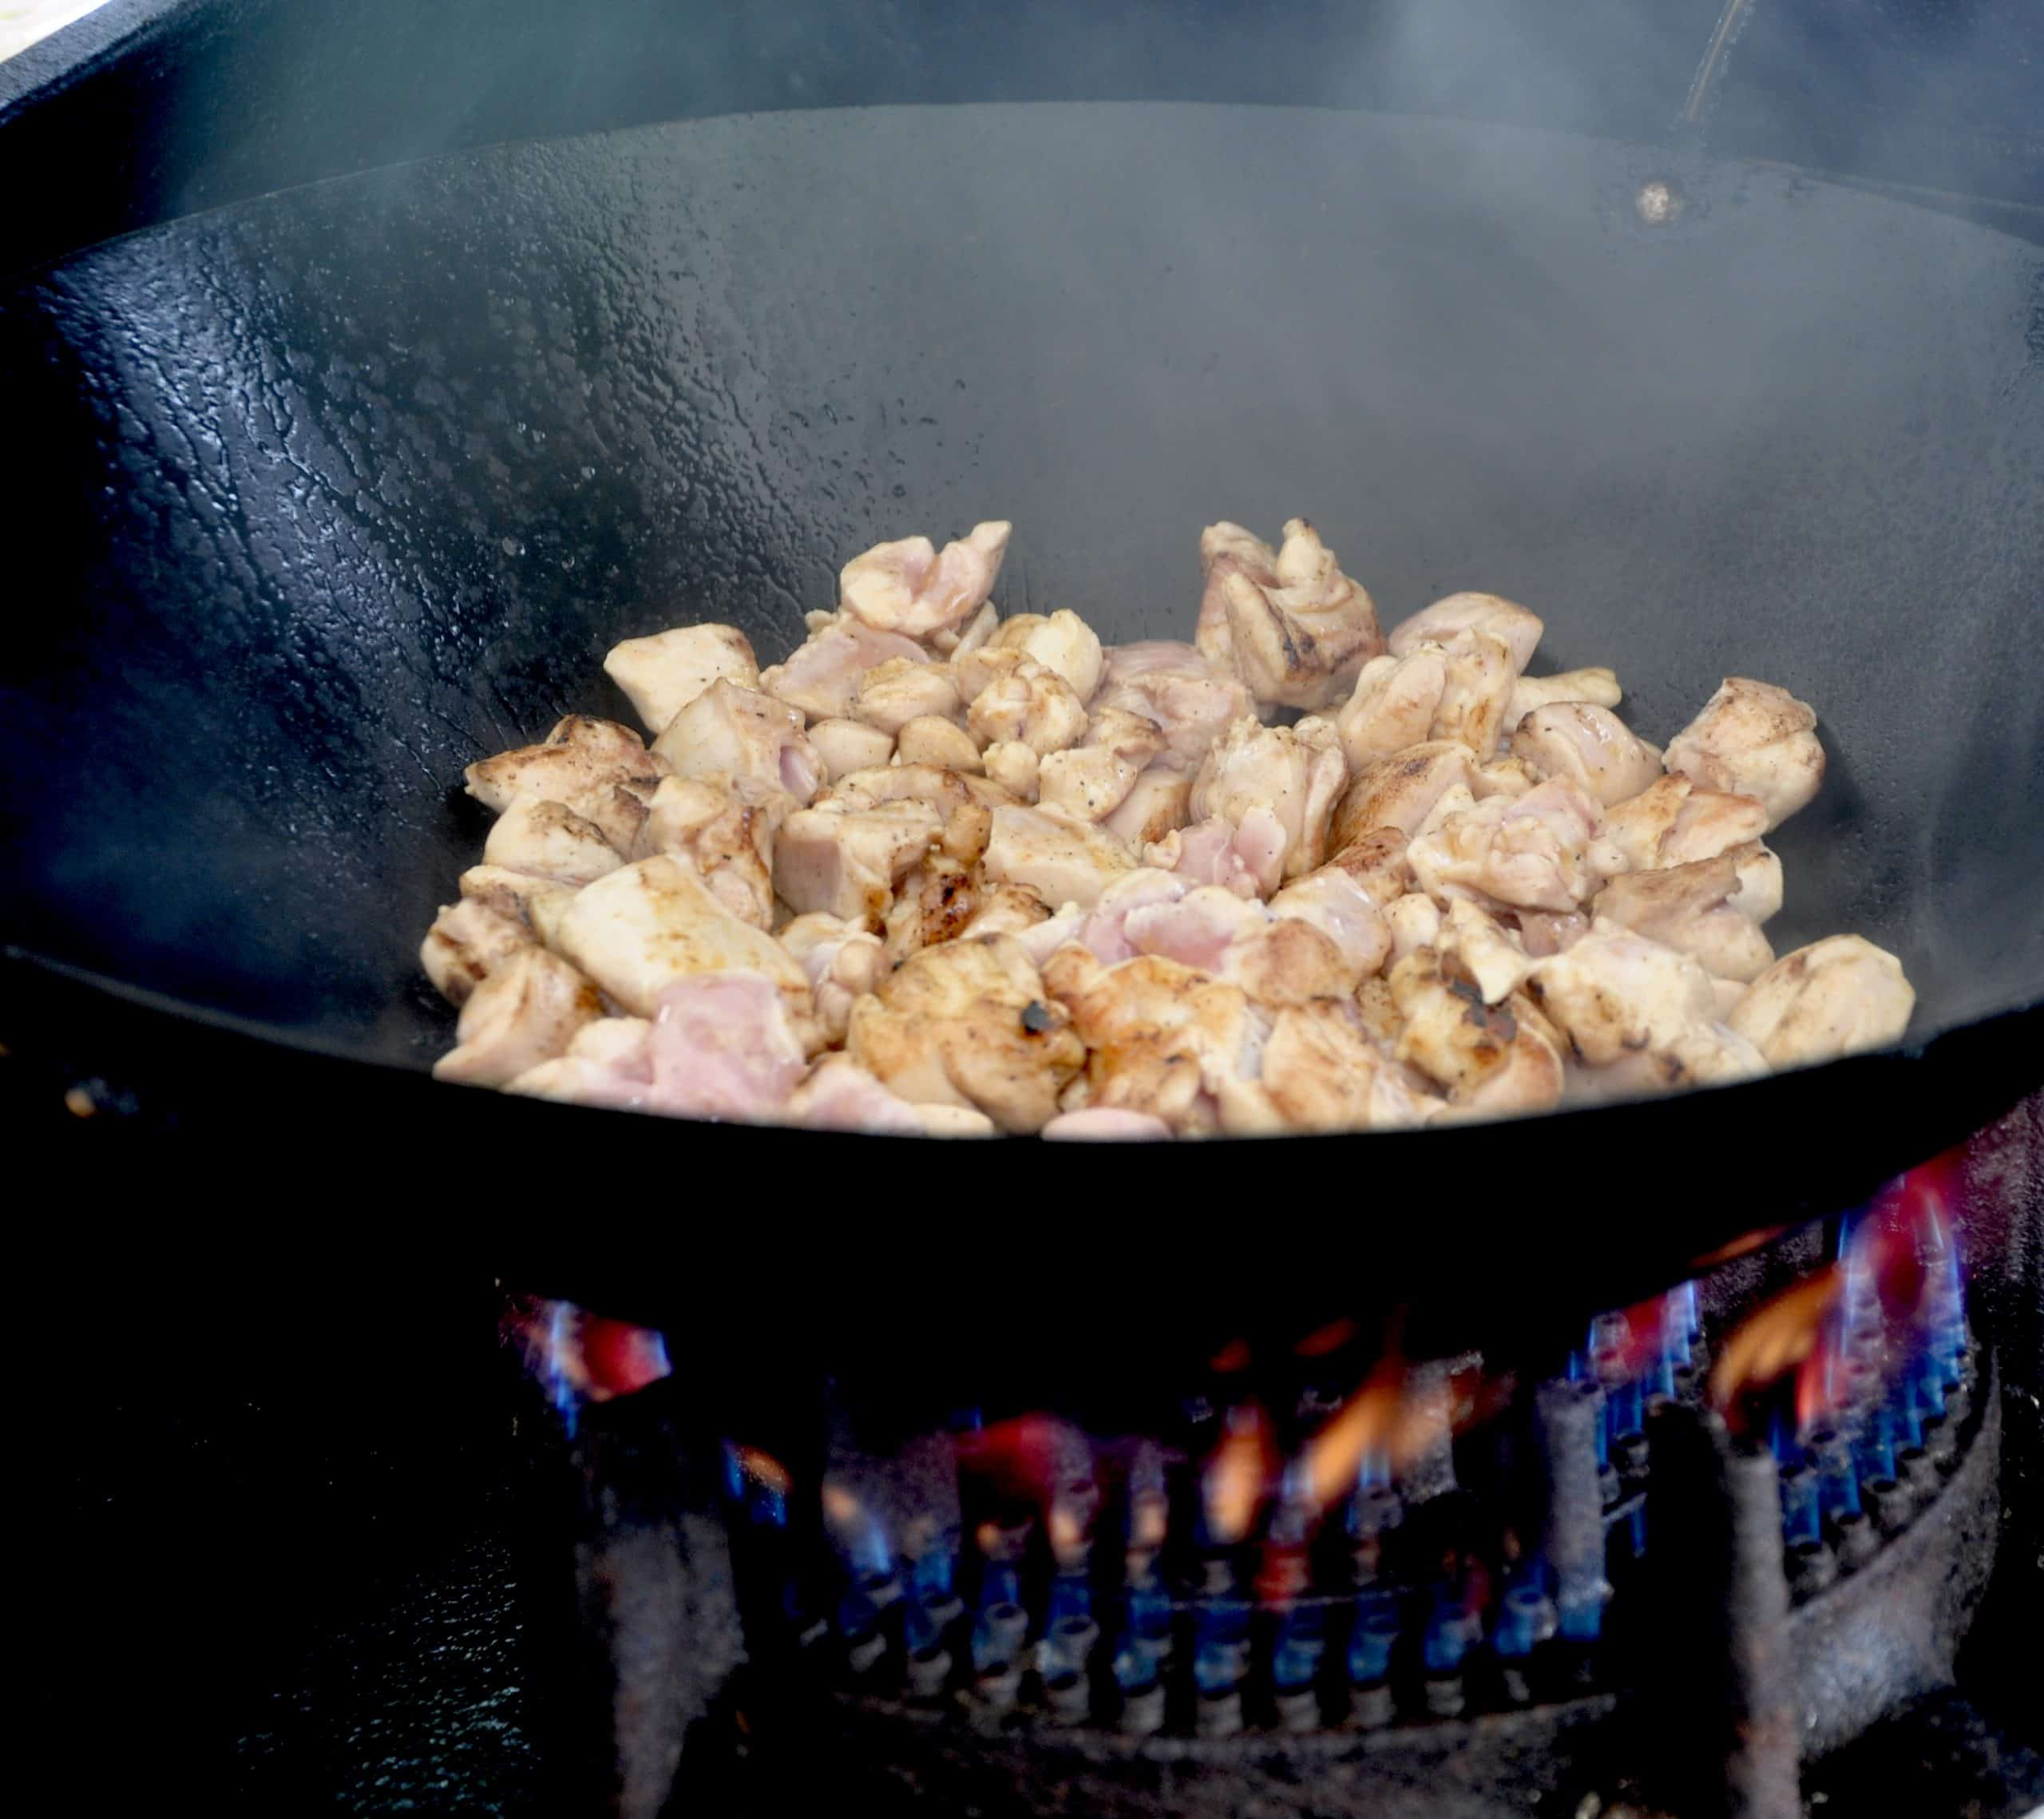 Chicken in wok over gas flame